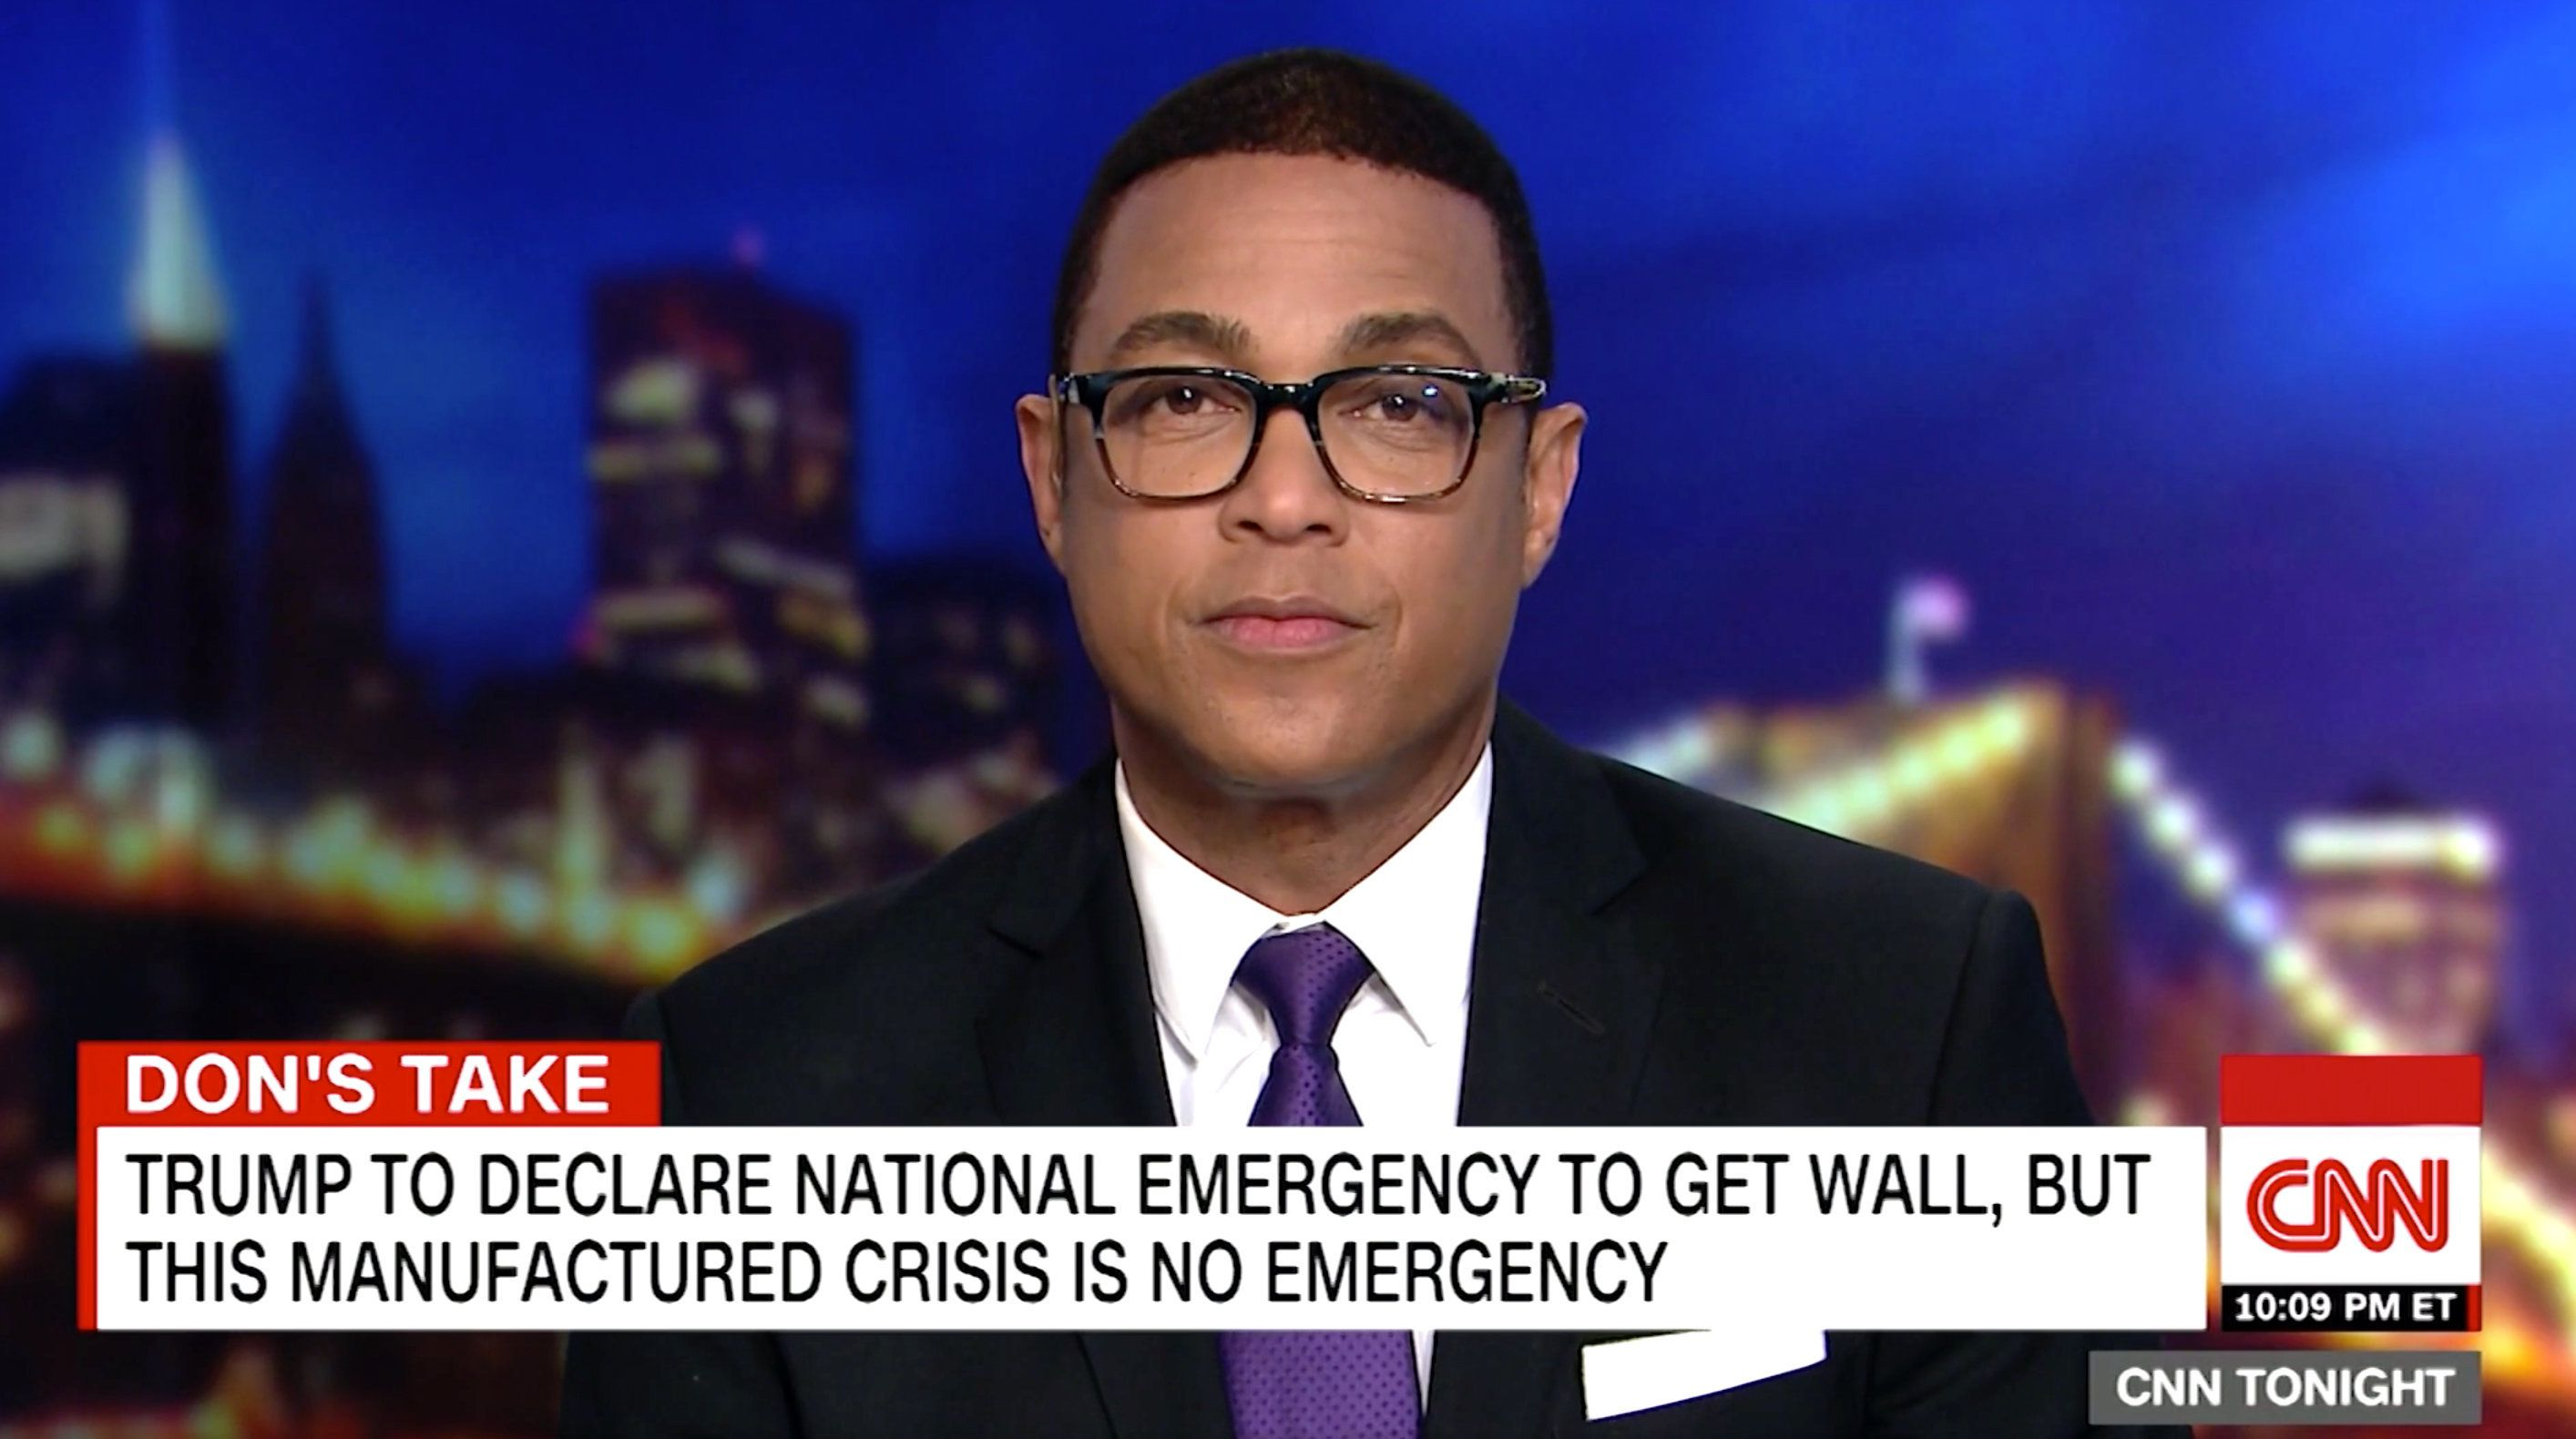 CNN's Don Lemon delivered a scathing rebuke of President Donald Trump's plan to declare a national emergency, calling it a made-up crisis designed so that the GOP could get its way on border wall funding.